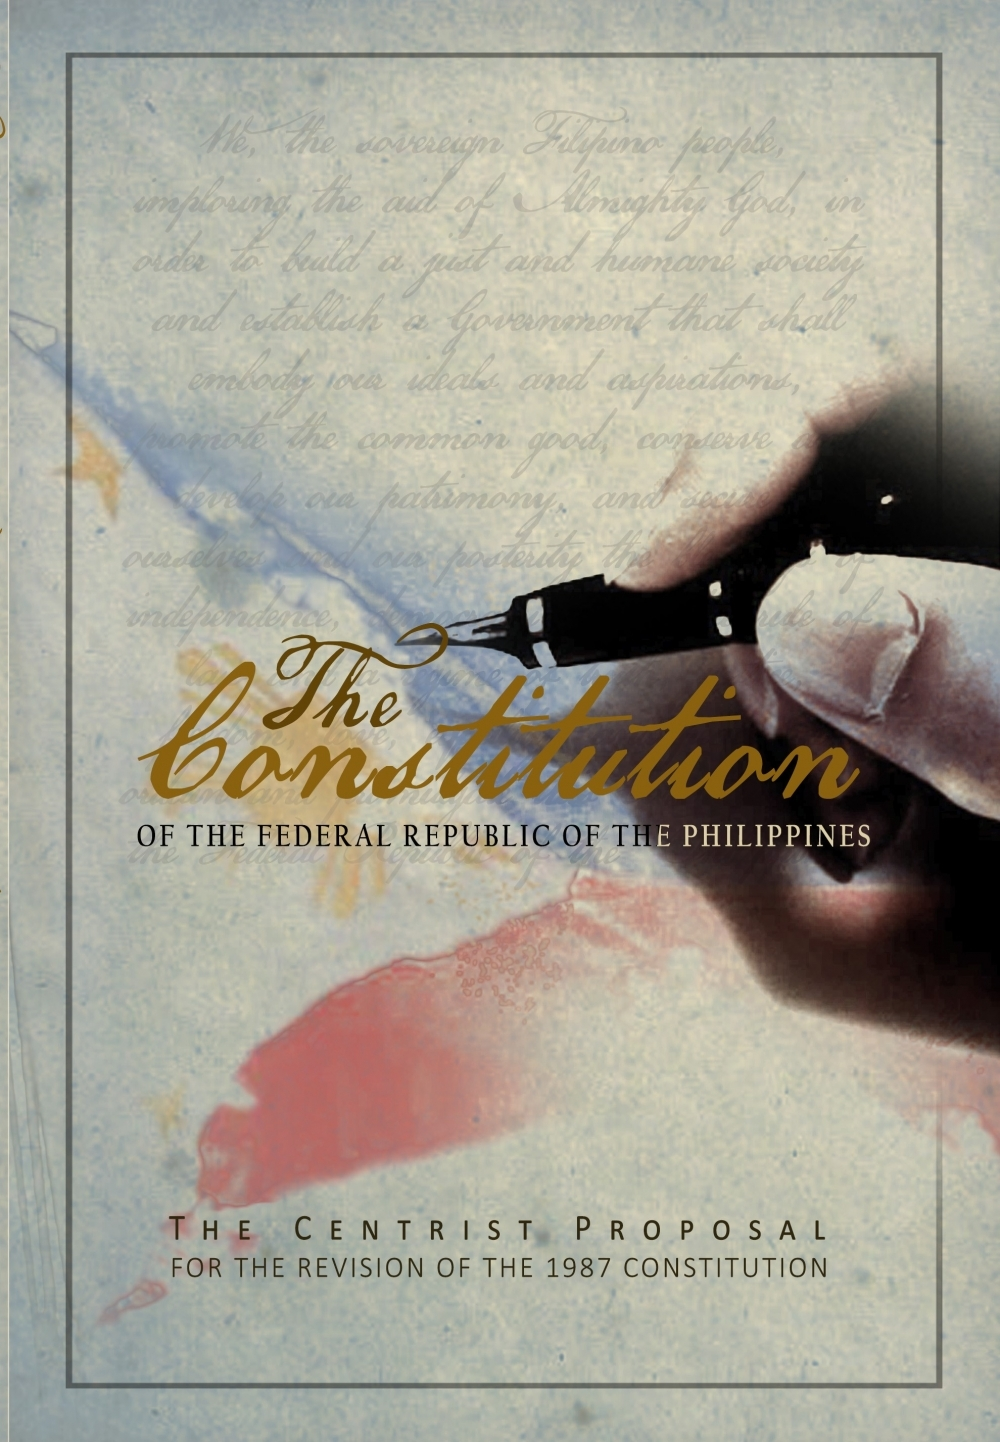 The Constitution of the Federal Republic of the Philippines - The Centrist Proposal for the Revision of the 1987 Constitution